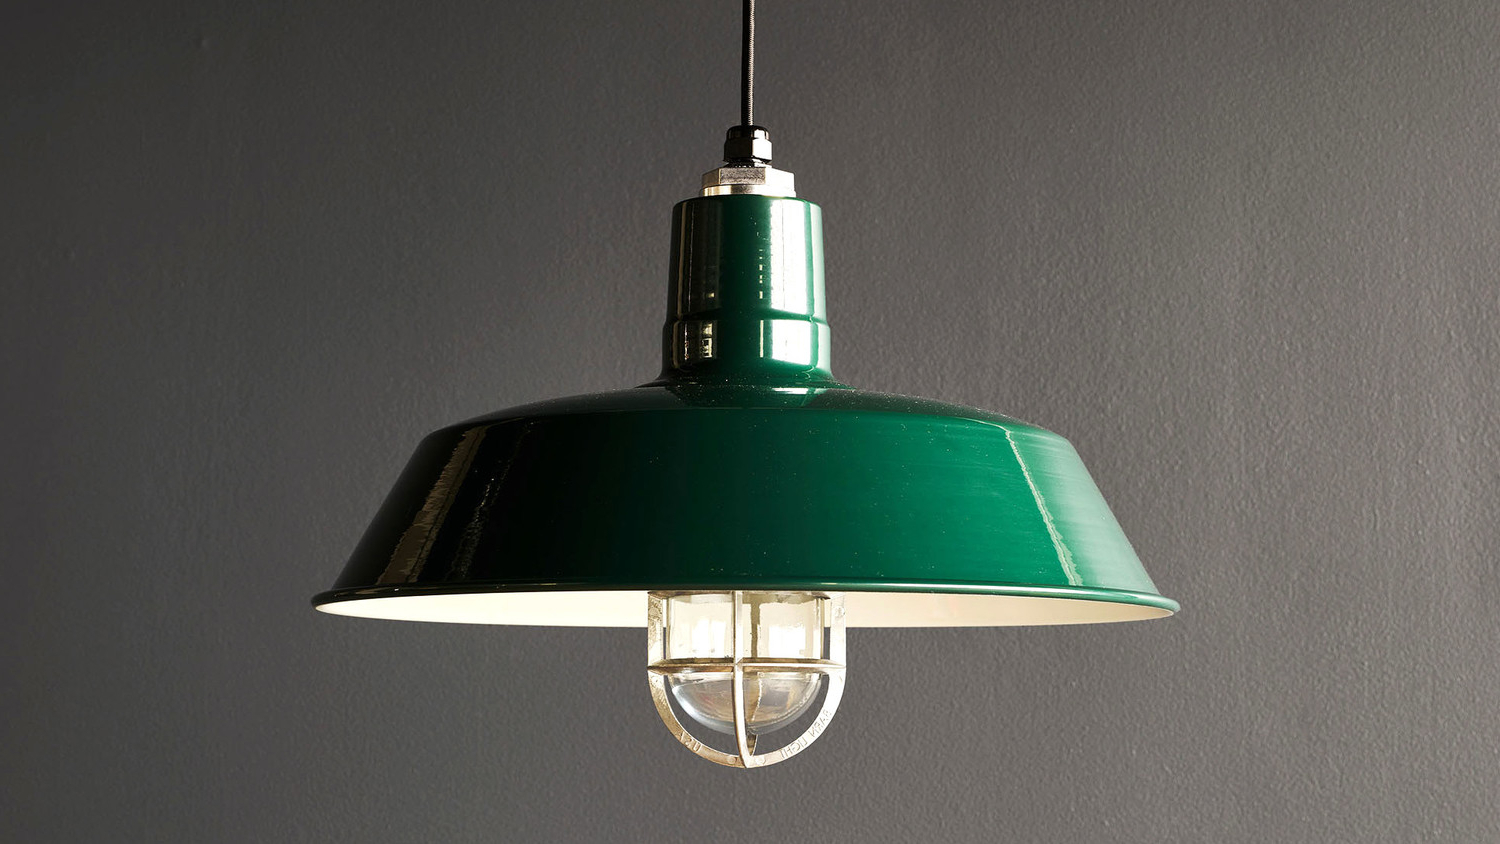 [%On Now! 34% Off Laurel Foundry Modern Farmhouse Carmen 4 Pertaining To Widely Used Carmen 8 Light Lantern Tiered Pendants|Carmen 8 Light Lantern Tiered Pendants Inside Most Recently Released On Now! 34% Off Laurel Foundry Modern Farmhouse Carmen 4|Well Known Carmen 8 Light Lantern Tiered Pendants Inside On Now! 34% Off Laurel Foundry Modern Farmhouse Carmen 4|Most Recently Released On Now! 34% Off Laurel Foundry Modern Farmhouse Carmen 4 Regarding Carmen 8 Light Lantern Tiered Pendants%] (View 20 of 20)